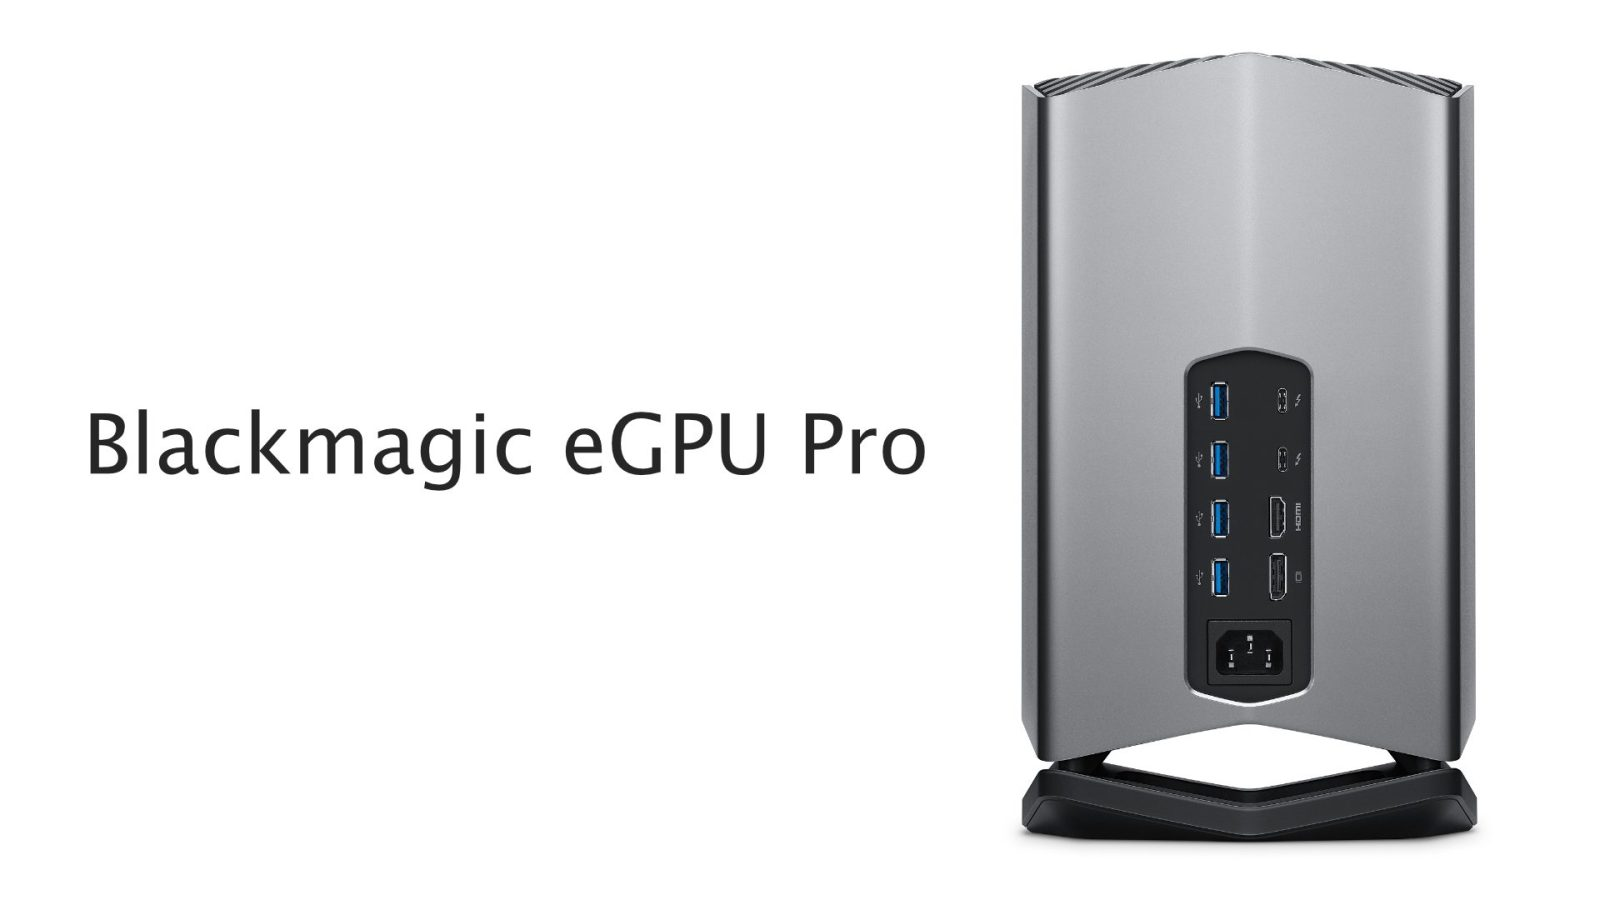 Blackmagic eGPU Pro with Radeon RX Vega 56 release delayed until December